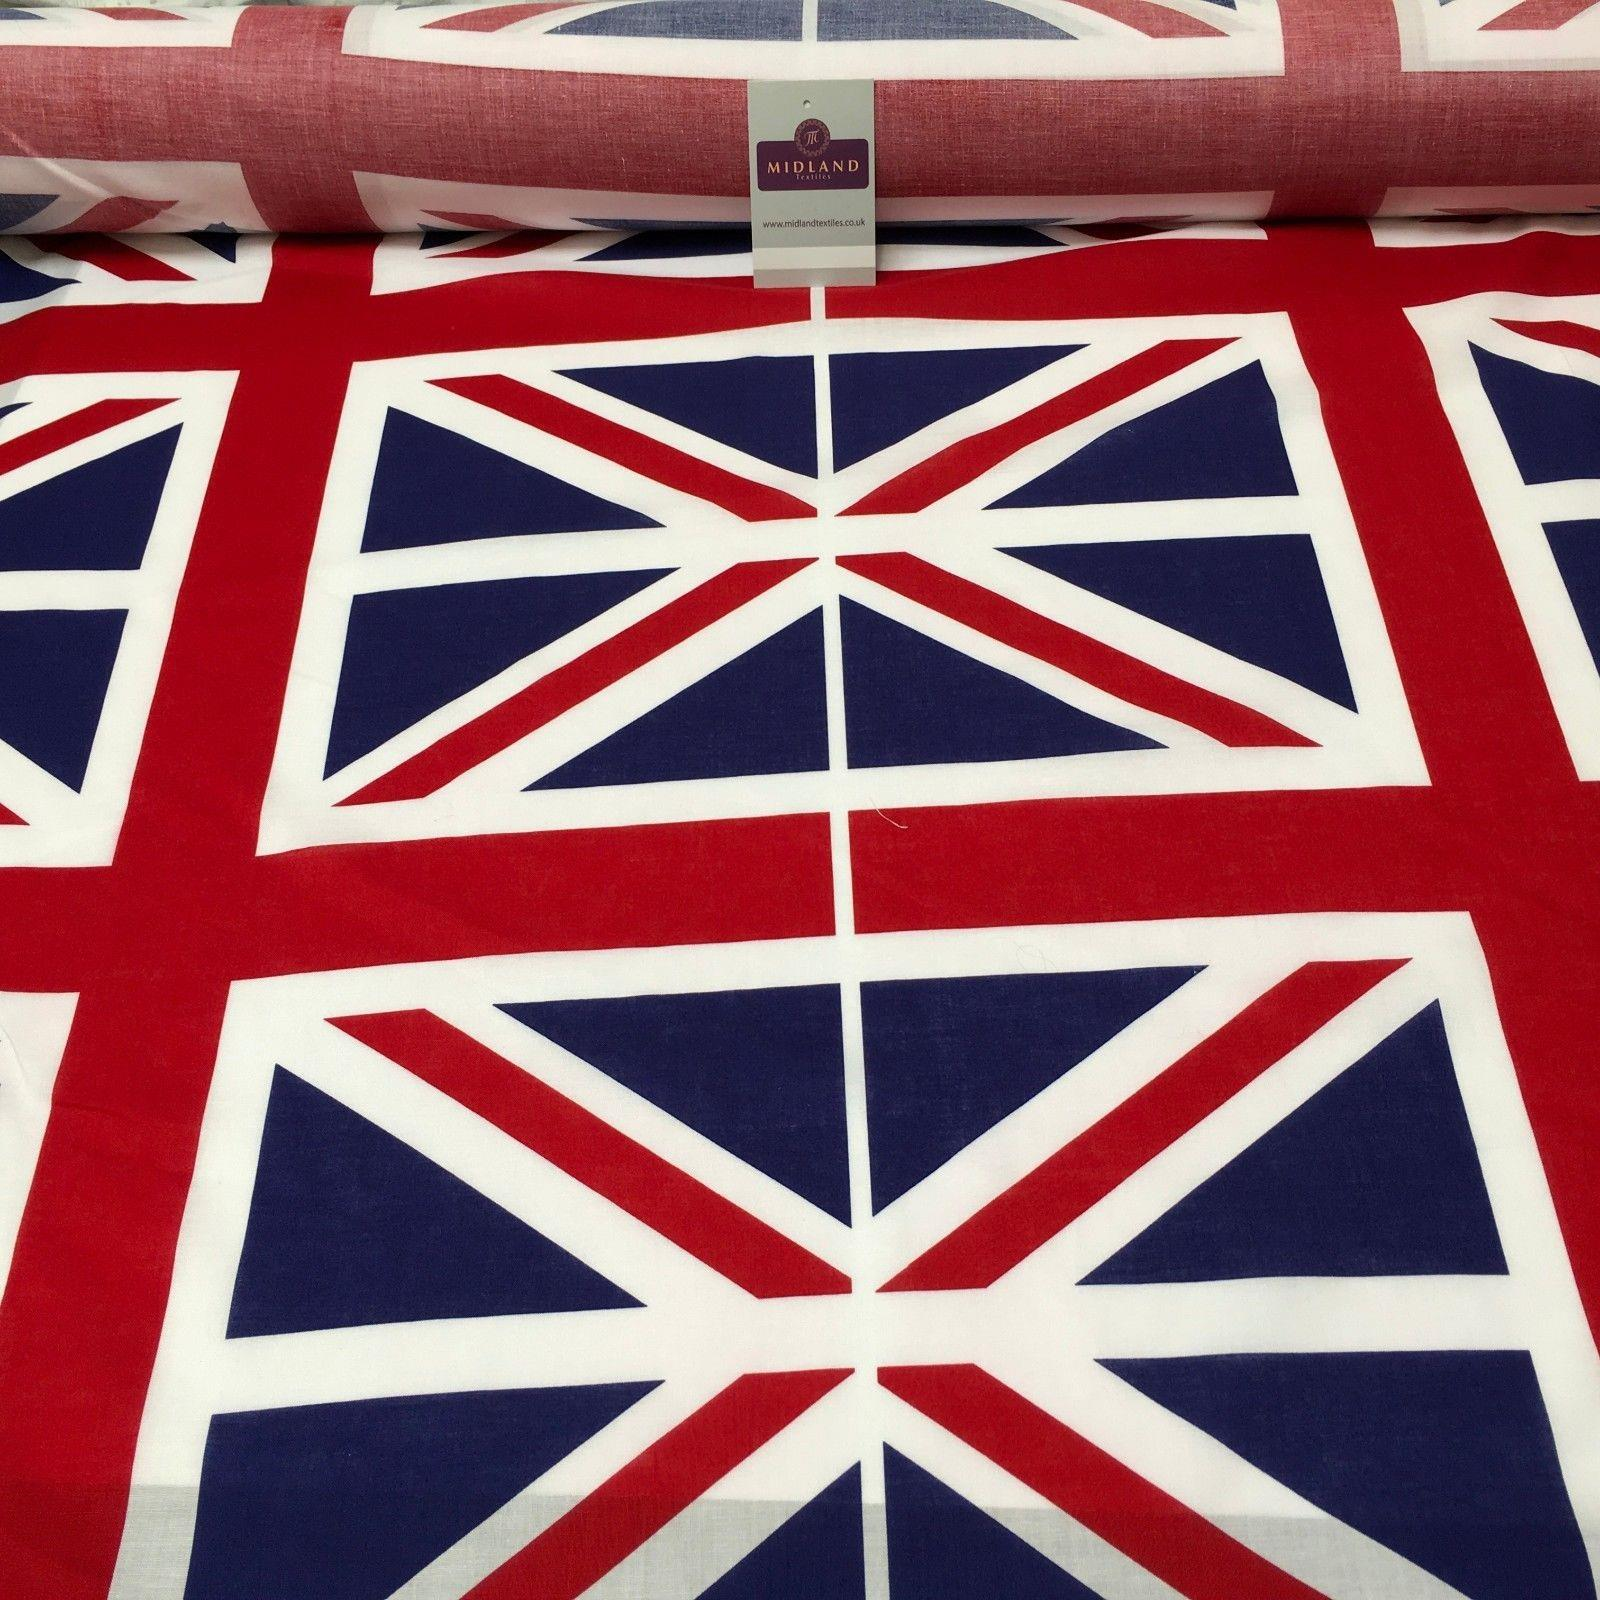 9 Union Jack Flags 100% Cotton Printed Panel craft Fabric MH926 Mtex